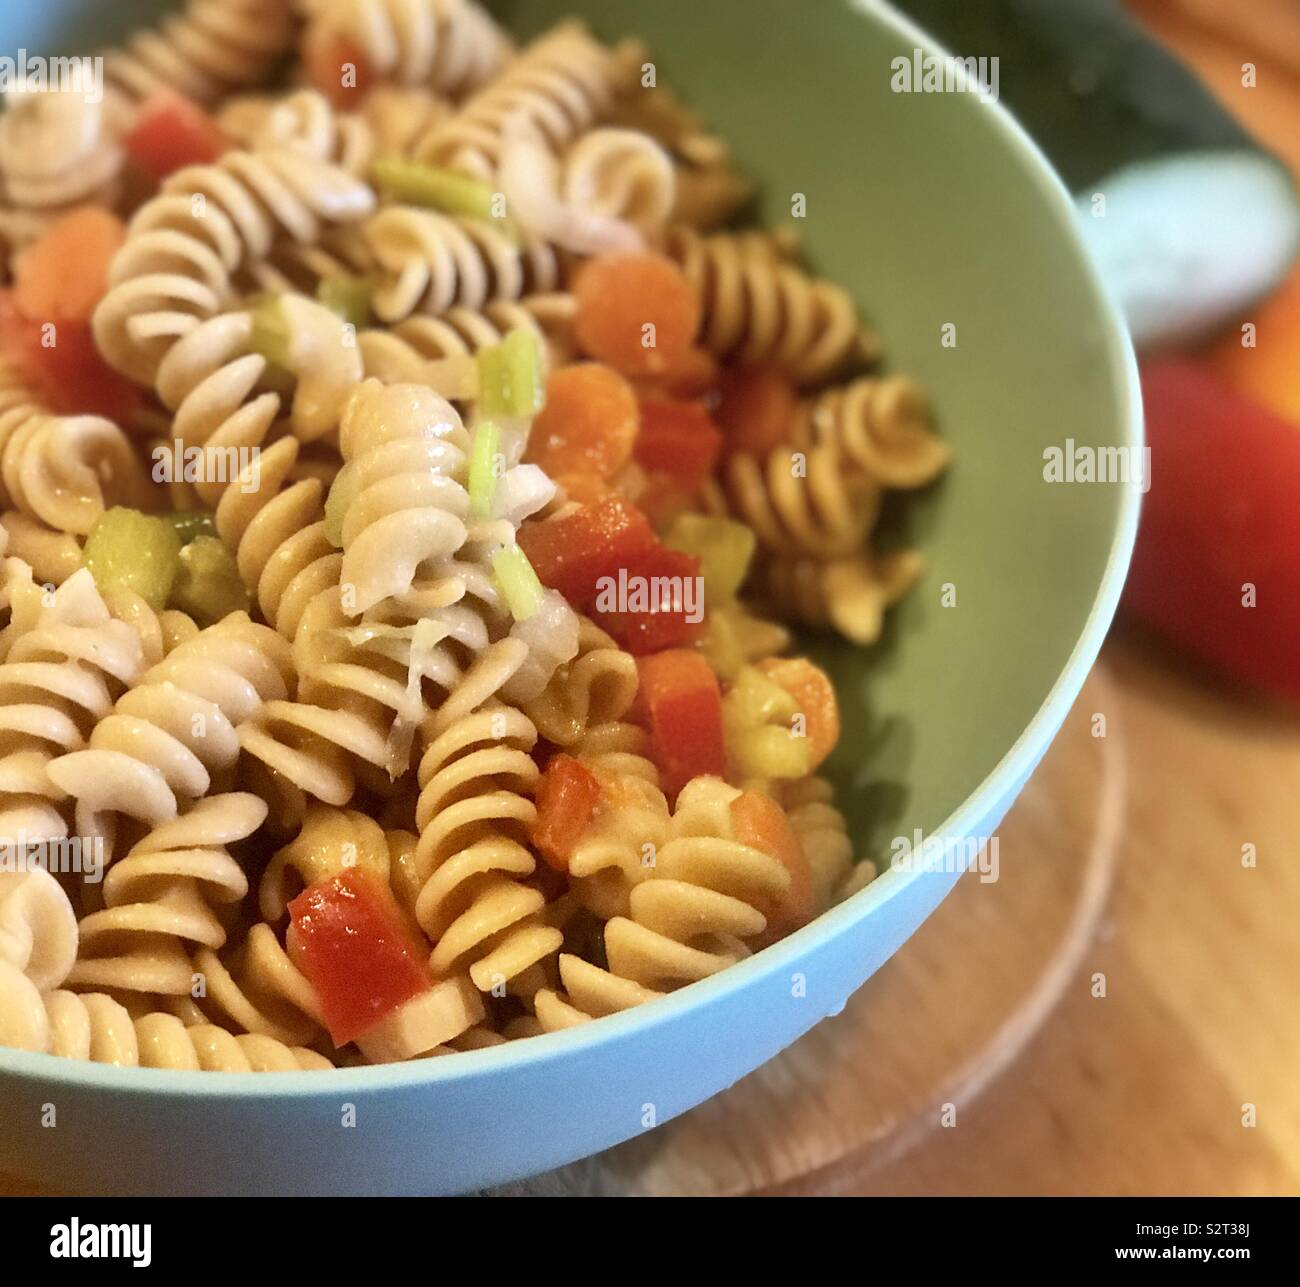 A bowl of pasta salad with bell peppers, cucumbers,carrots and garlic seasoning with the ingredients off to the side of the pasta bowl. - Stock Image